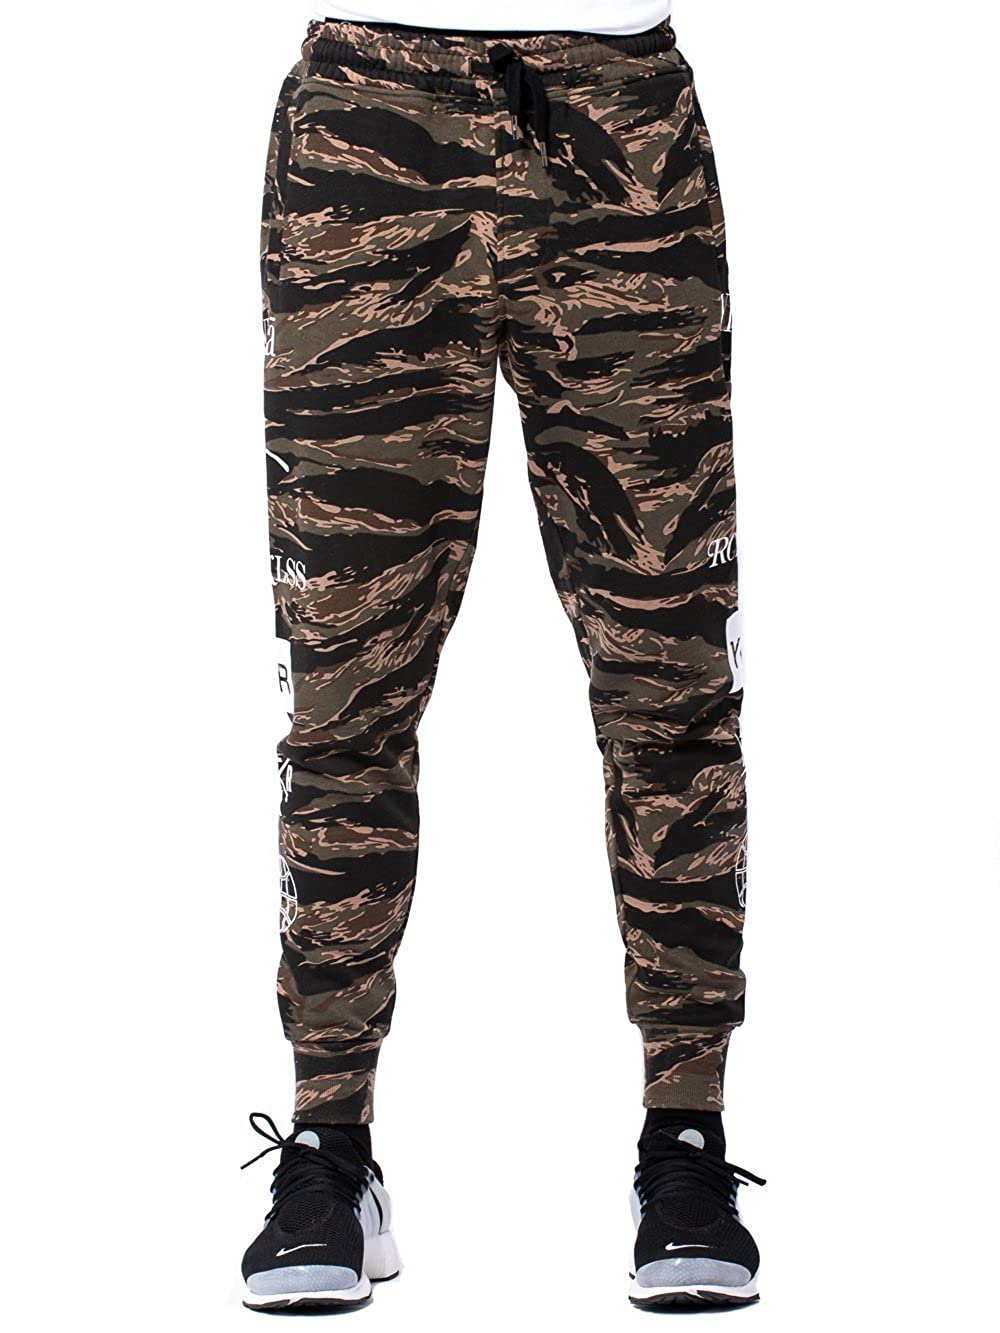 Young and Reckless - Micah Sweatpants- Tiger Camo - - Mens - Bottoms - Sweatpants - young & reckless 11760331855